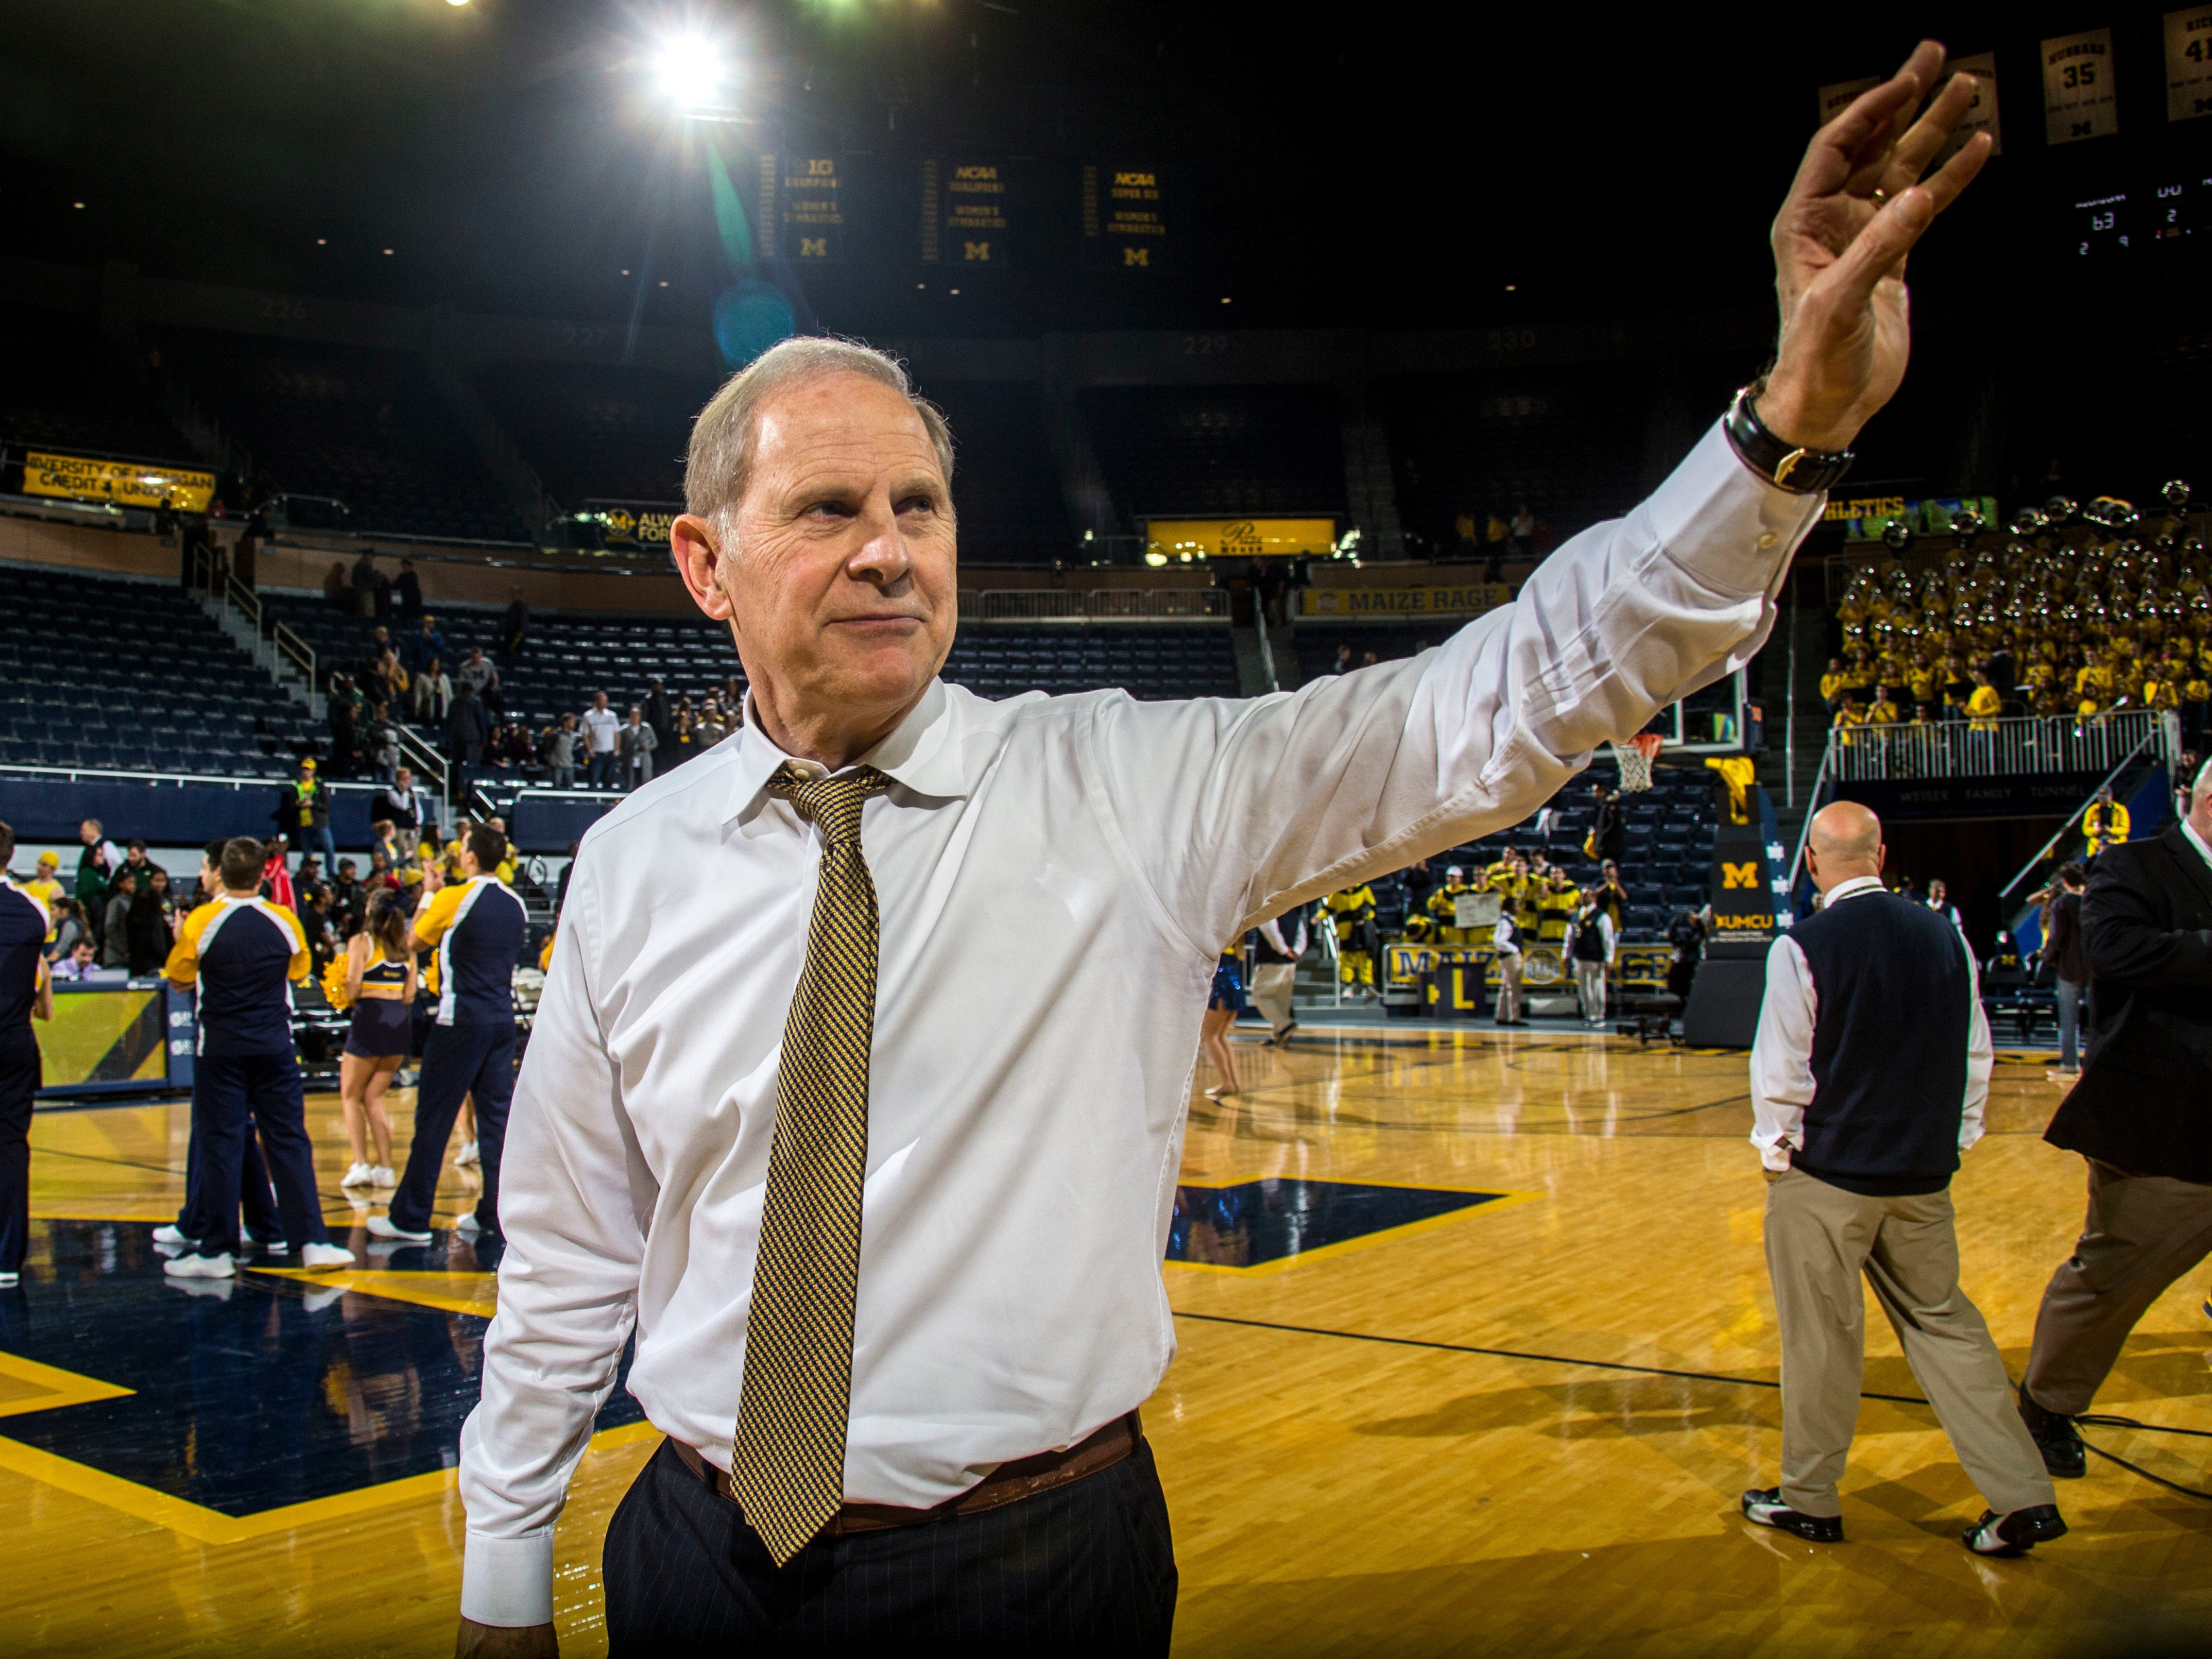 Michigan head coach John Beilein waves to fans after an NCAA college basketball game against Norfolk State at Crisler Center in Ann Arbor, Mich., Tuesday, Nov. 6, 2018. Michigan won 63-44, and Beilein won his 800th career game as a coach.